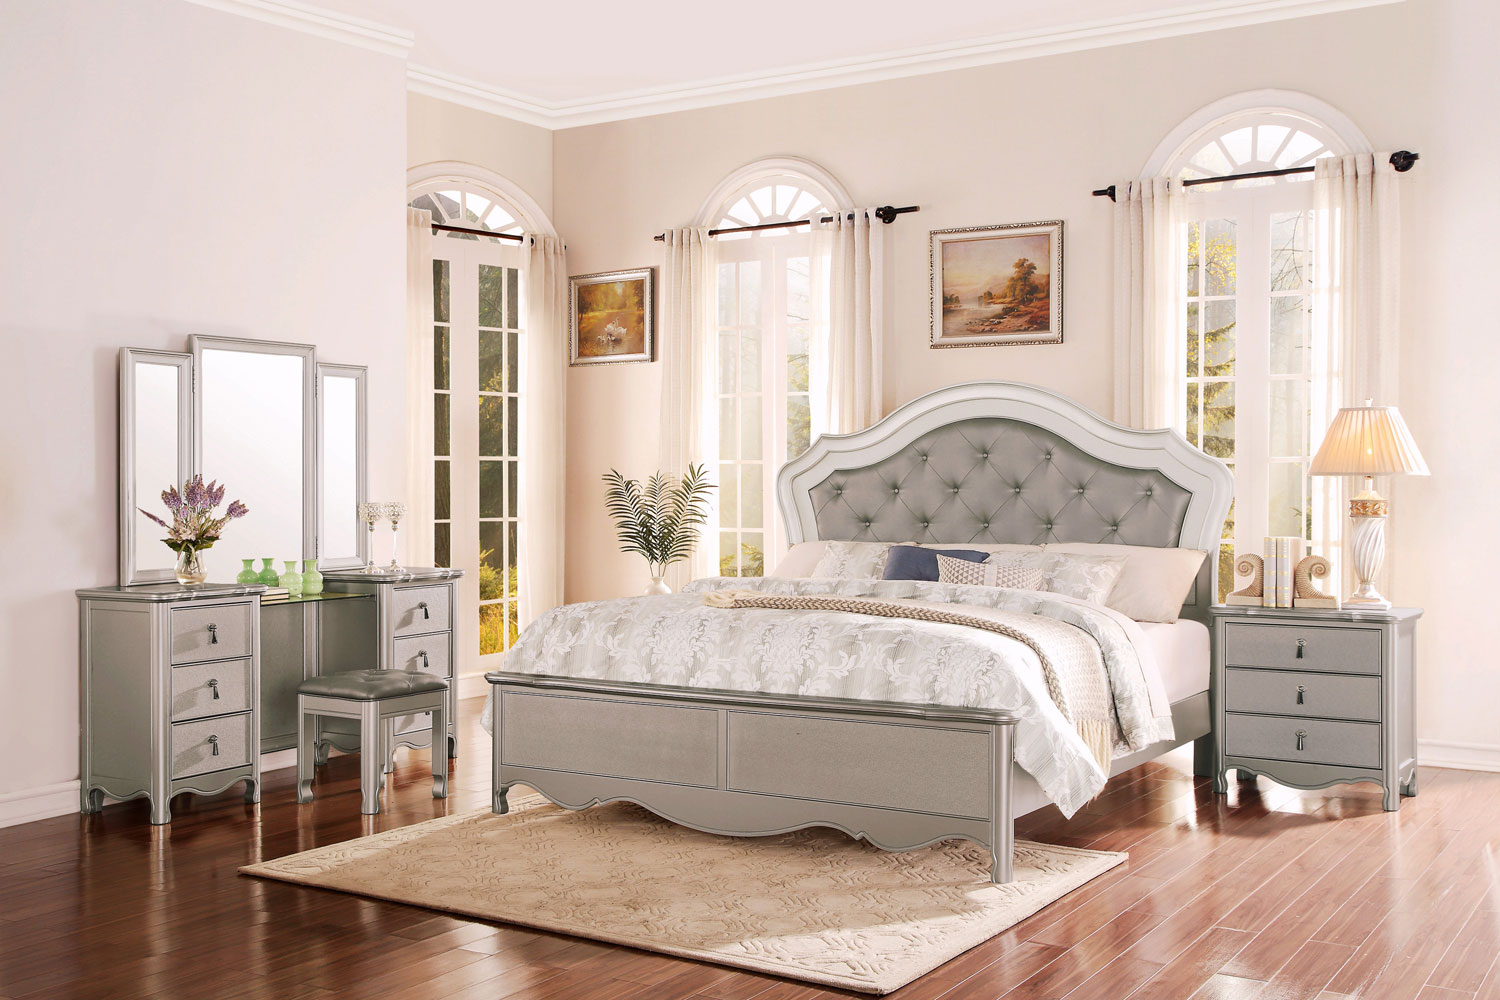 Homelegance Toulouse Upholstered Bedroom Set - Champagne